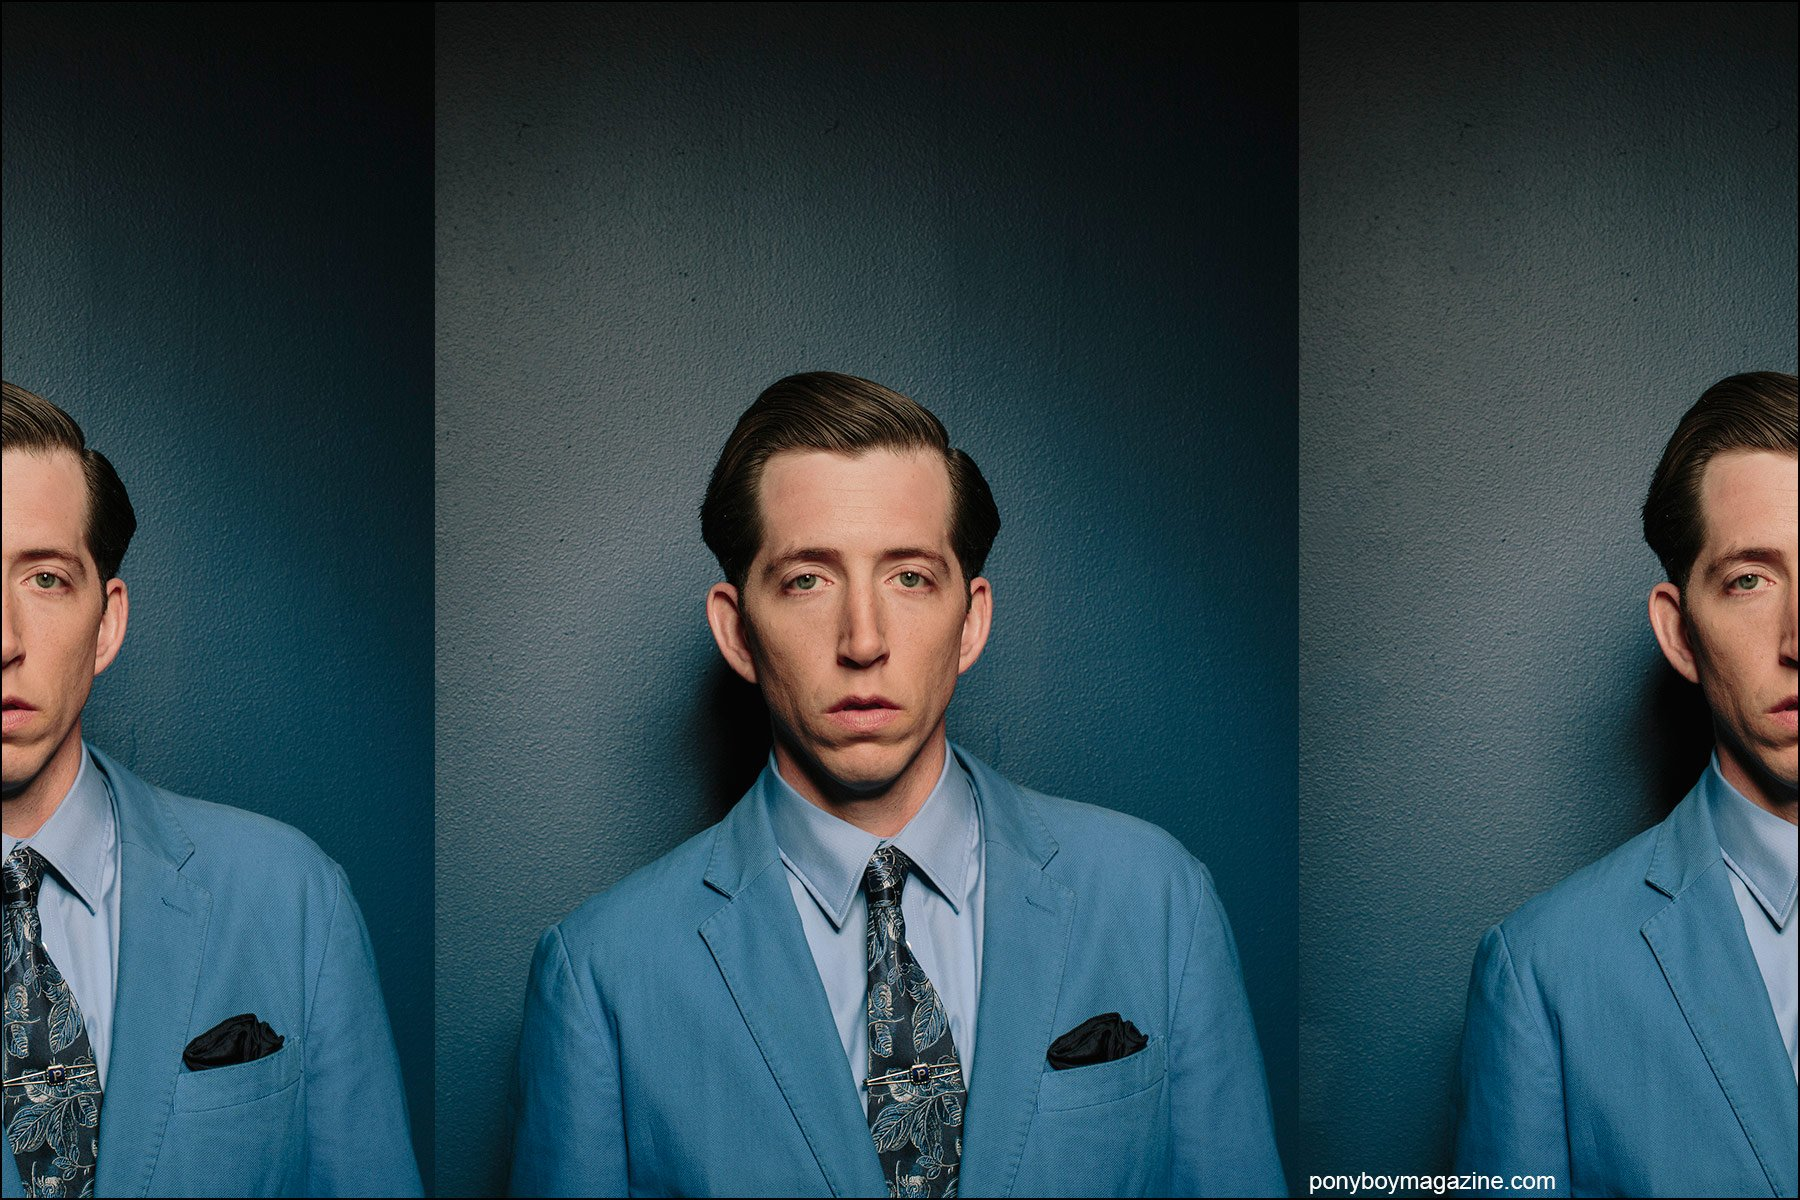 Portrait of musician Pokey LaFarge by photographer Joshua Black Wilkins. Ponyboy magazine New York.